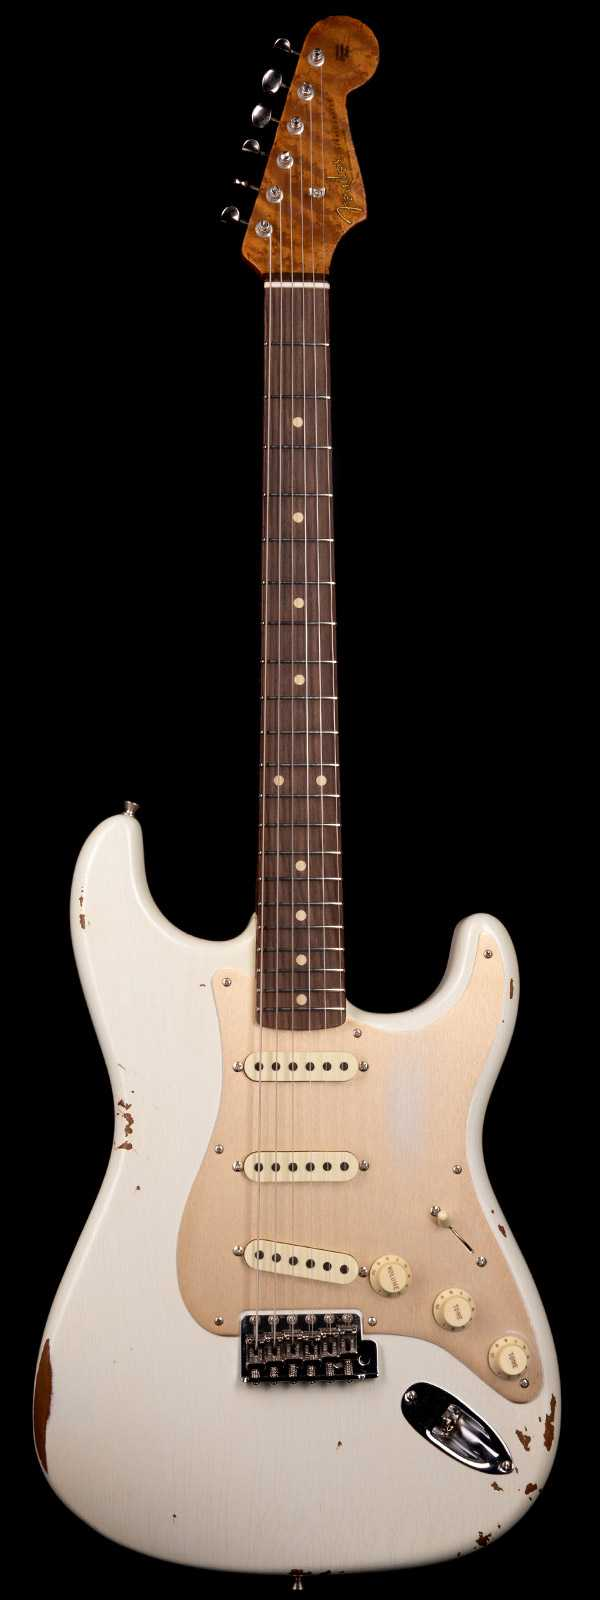 Fender Custom Shop 1960 Stratocaster Relic Roasted Body and Neck Aged Olympic White